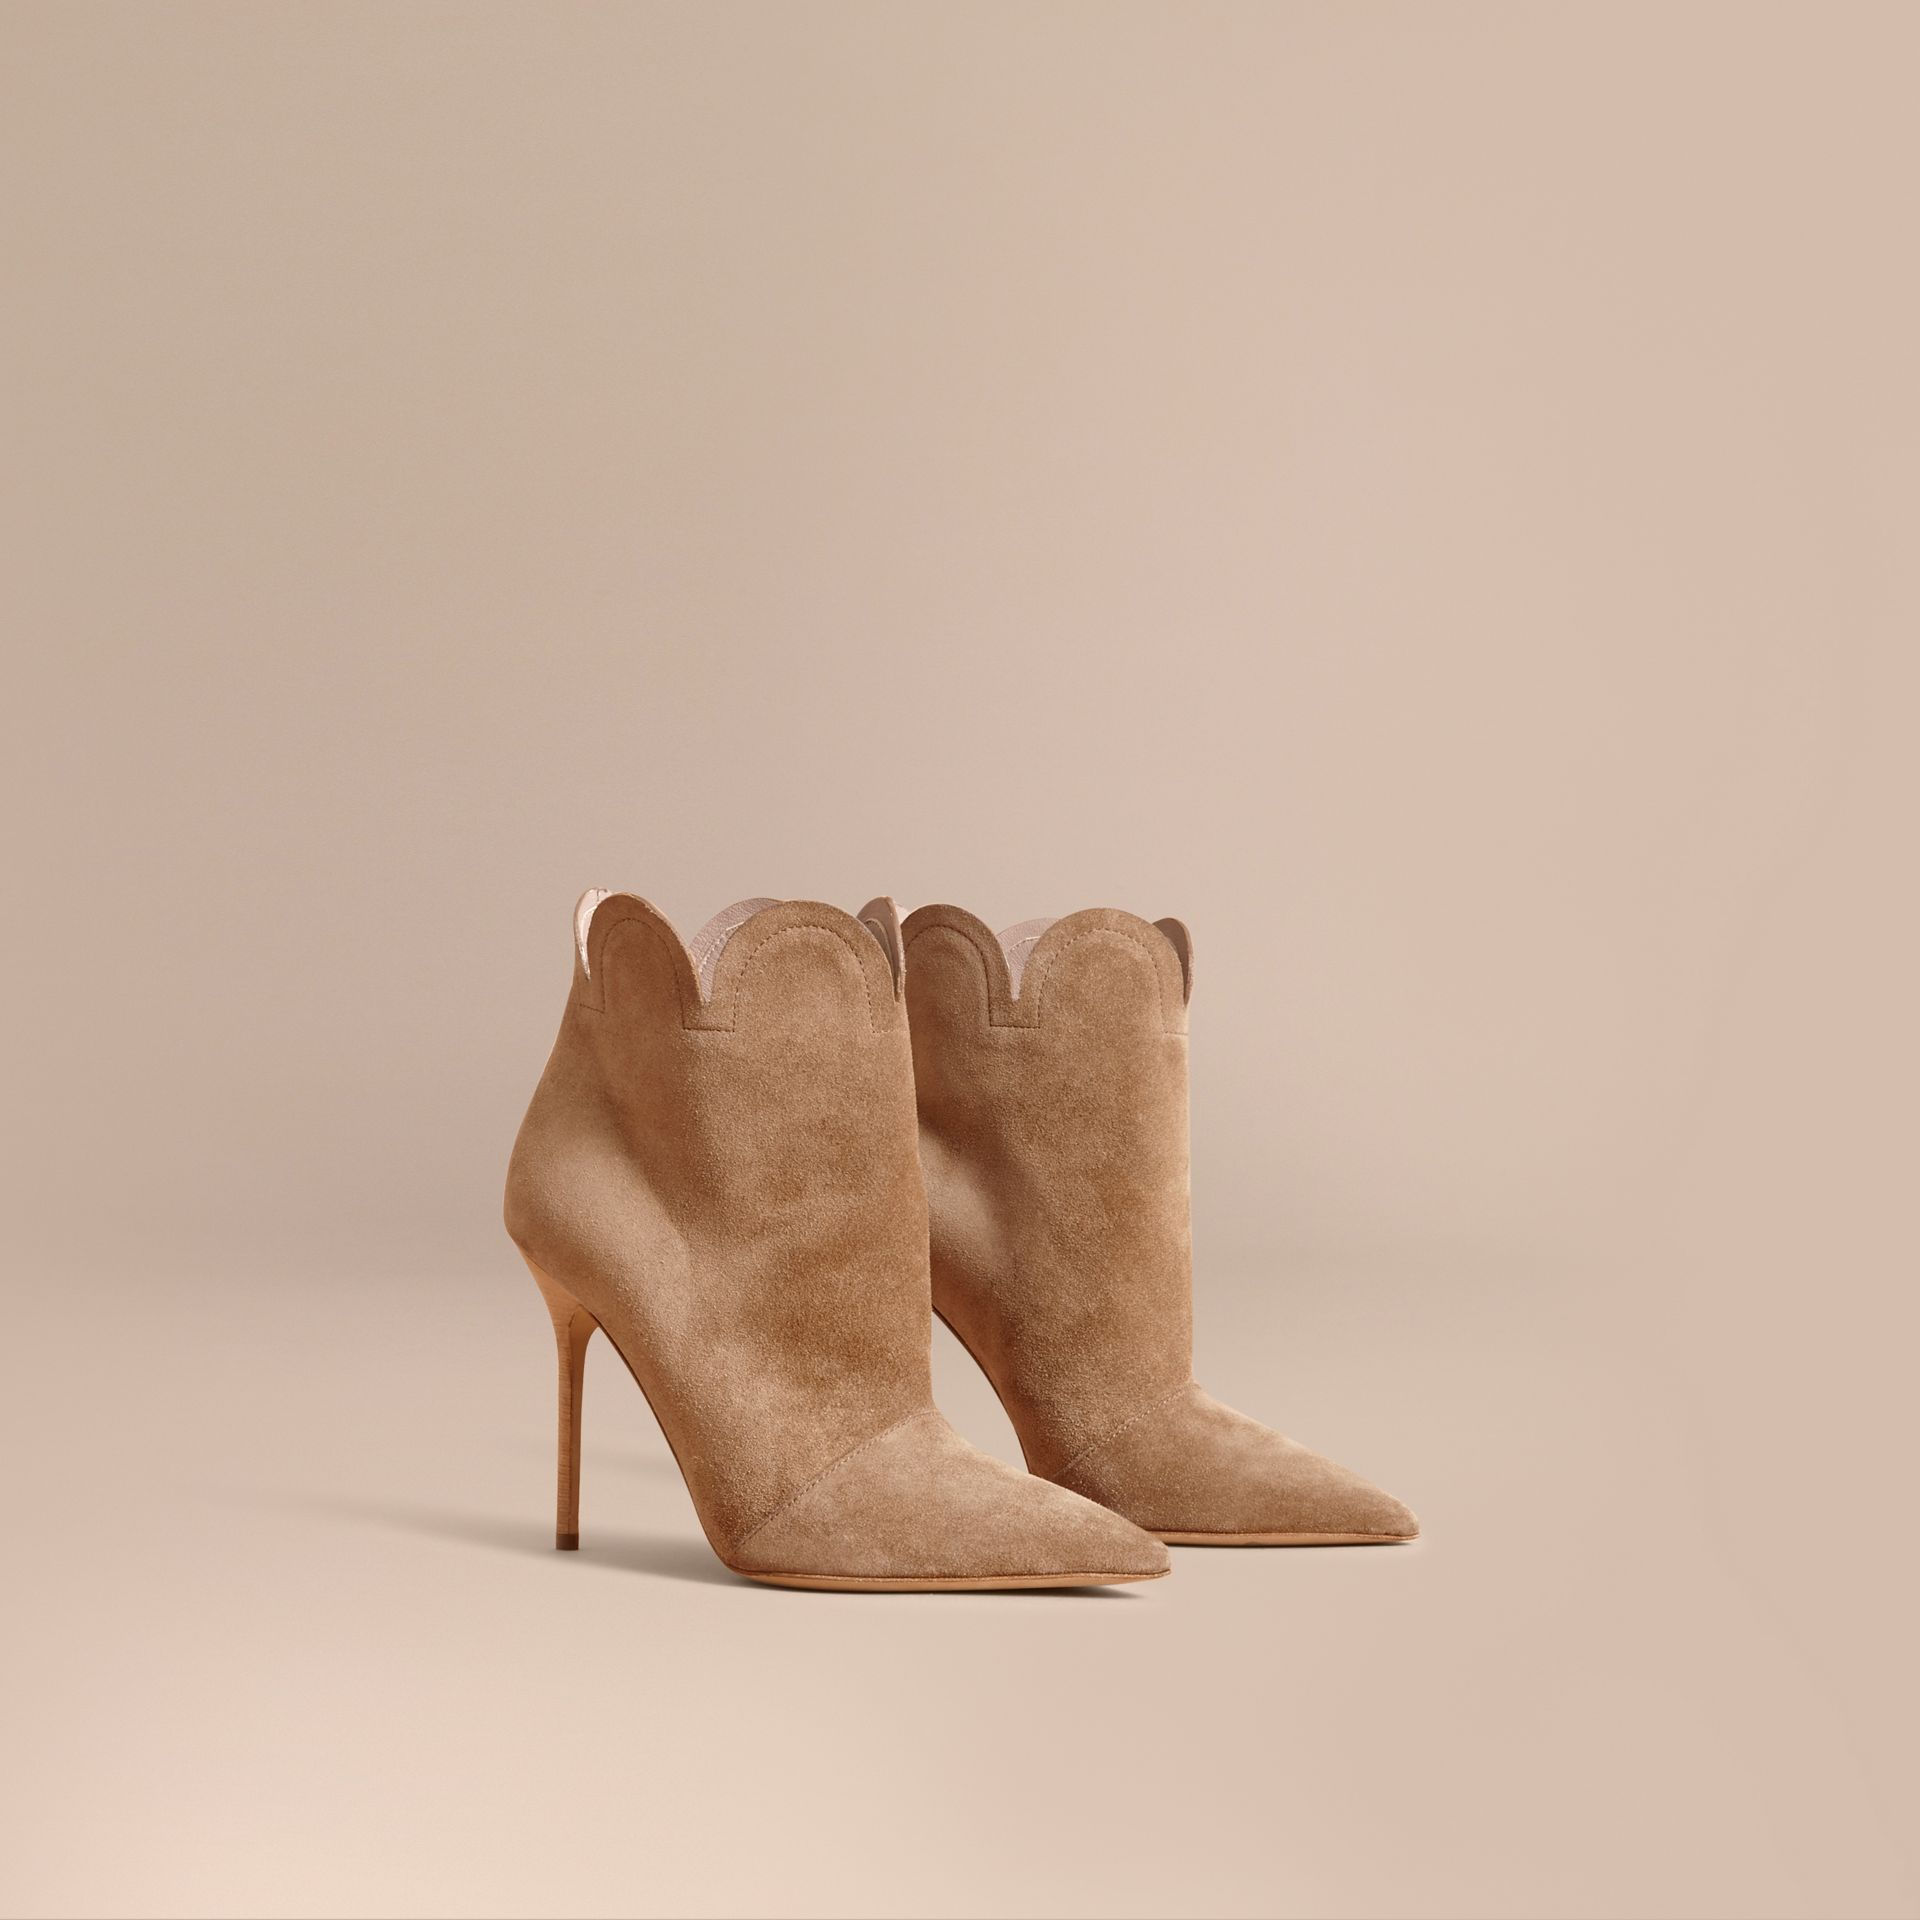 Scalloped Suede Ankle Boots in Sandstone - Women | Burberry United States - gallery image 1